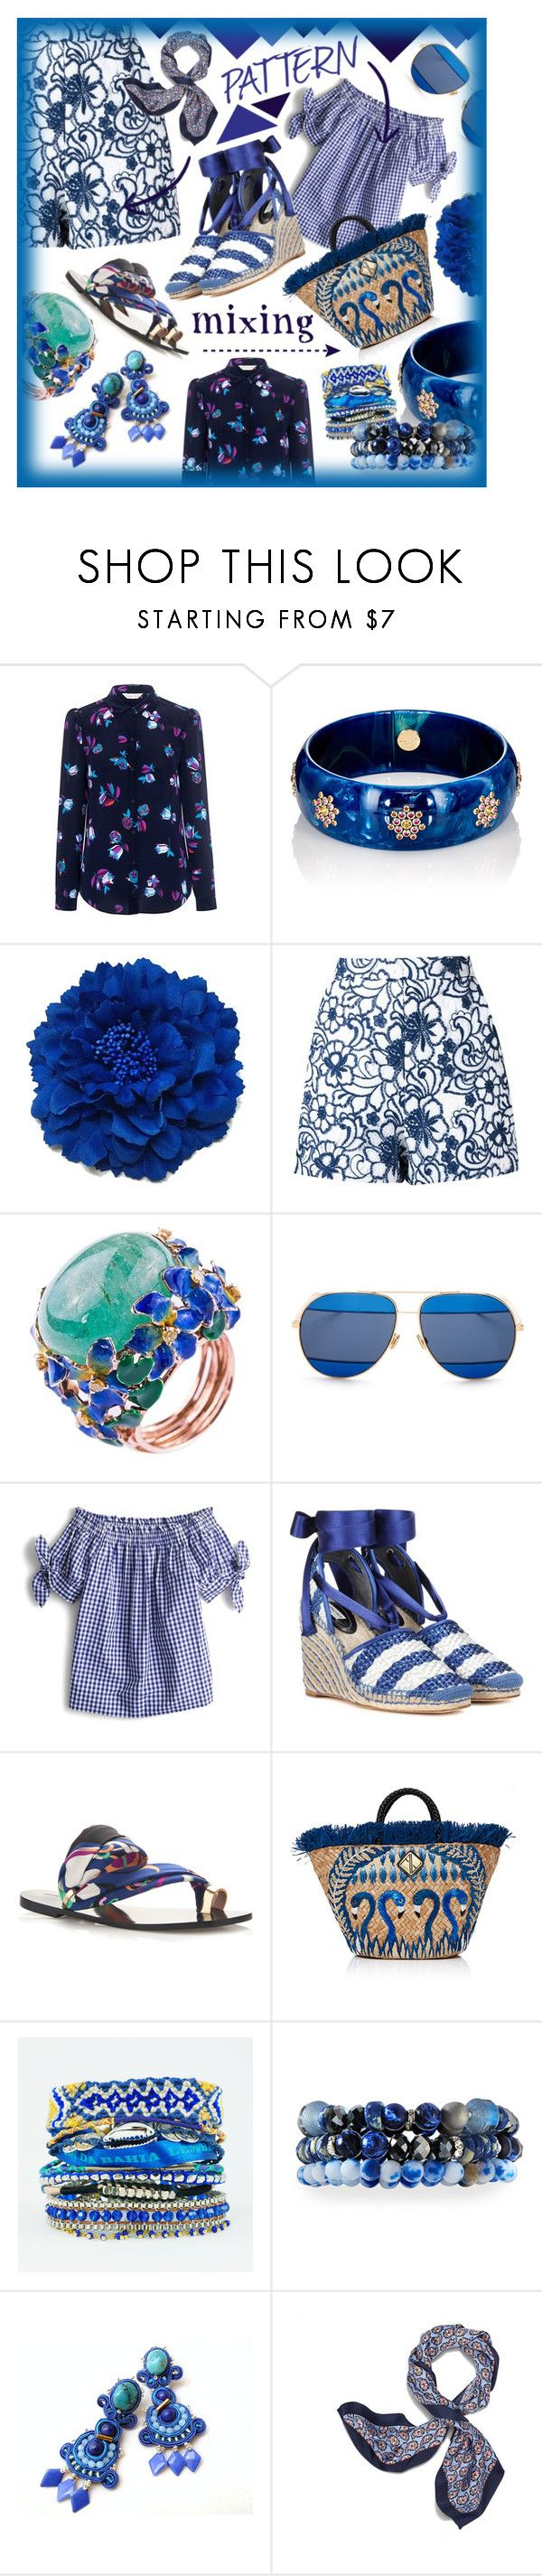 """Pattern Mixing: Be electric in blue prints from Head to Toe!"" by style-queen-kc-nigz ❤ liked on Polyvore featuring Rebecca Taylor, Mark Davis, Martha Medeiros, Christian Dior, J.Crew, Balenciaga, Aranáz, Hipanema, Lydell NYC and Lazuli"